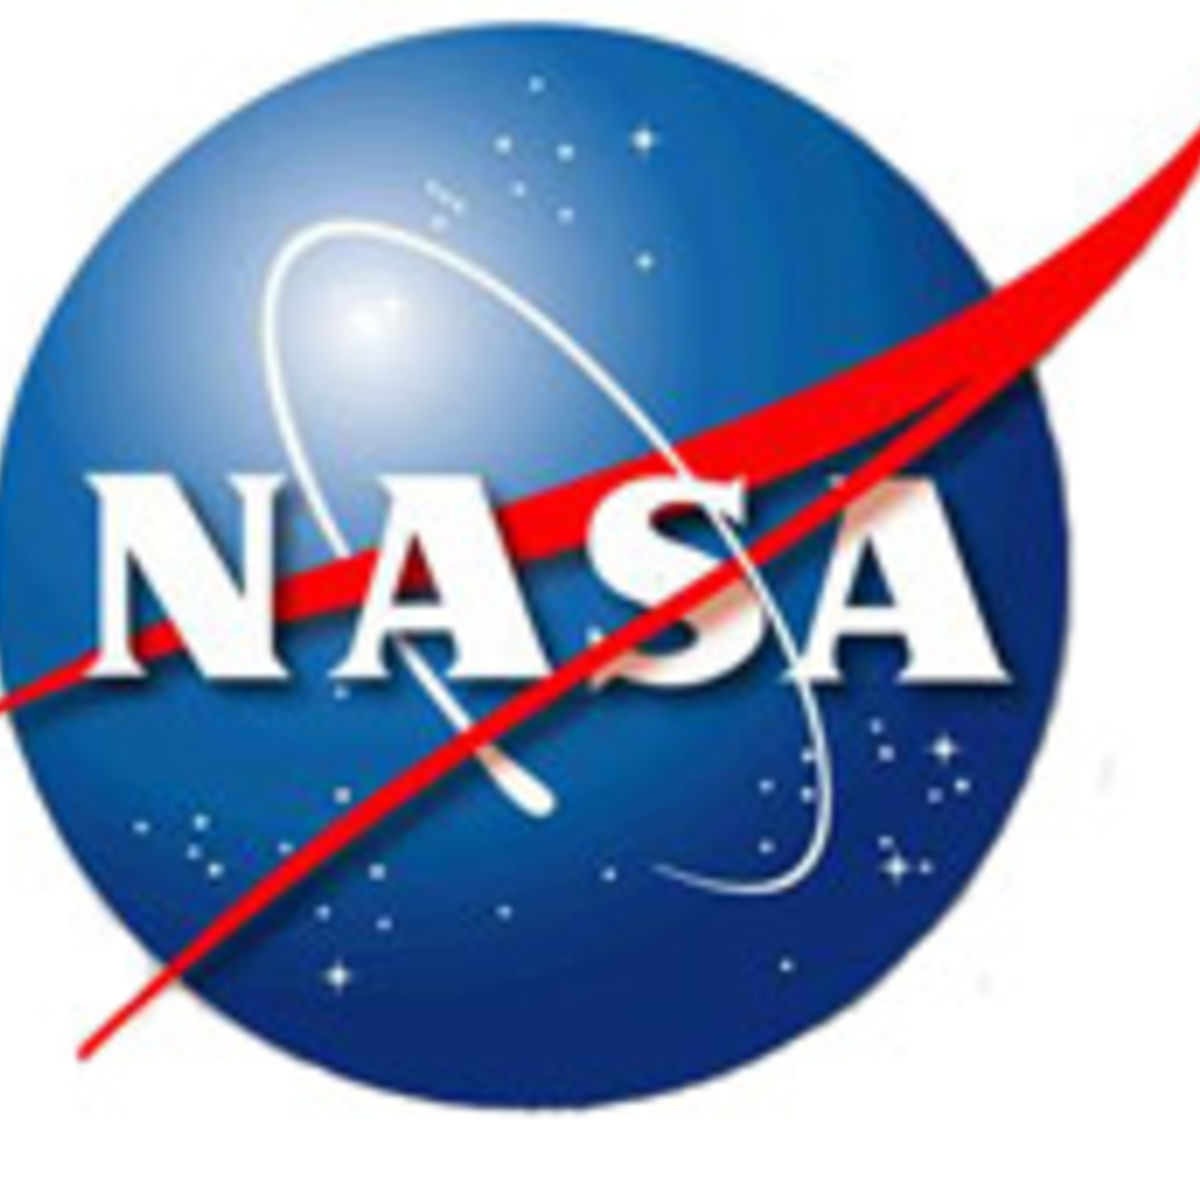 nasa_logo_thumb_1.jpg